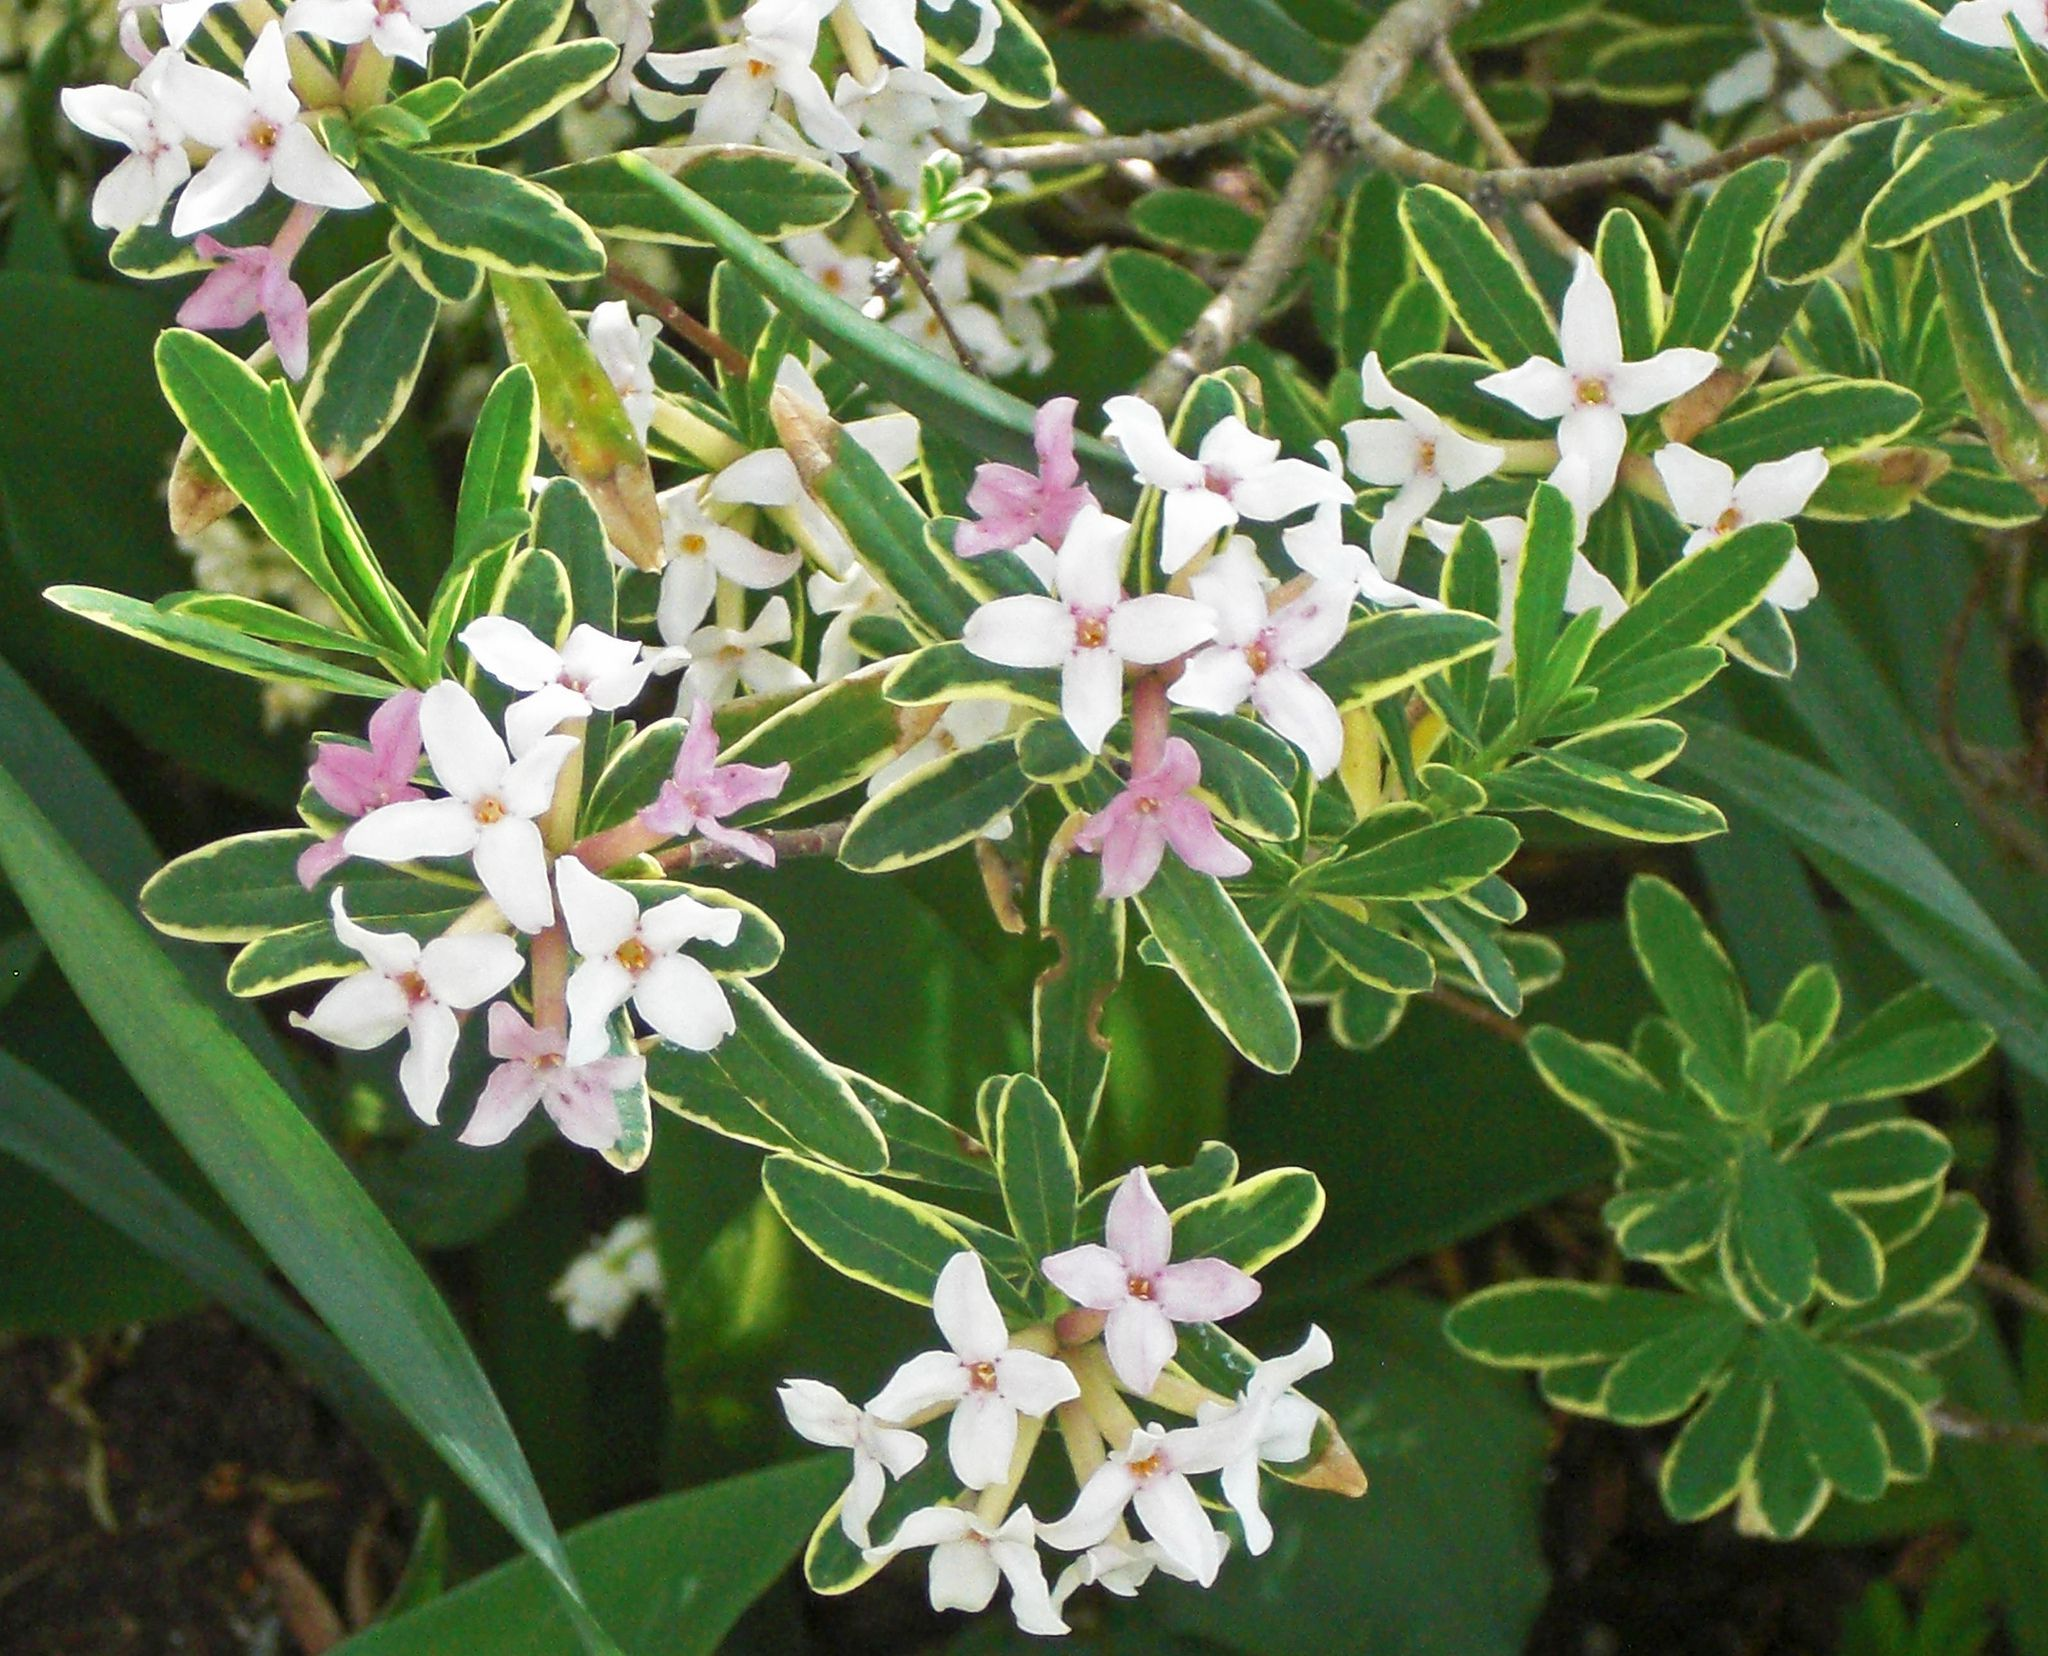 Daphne Shrubs Care And Growing Guide